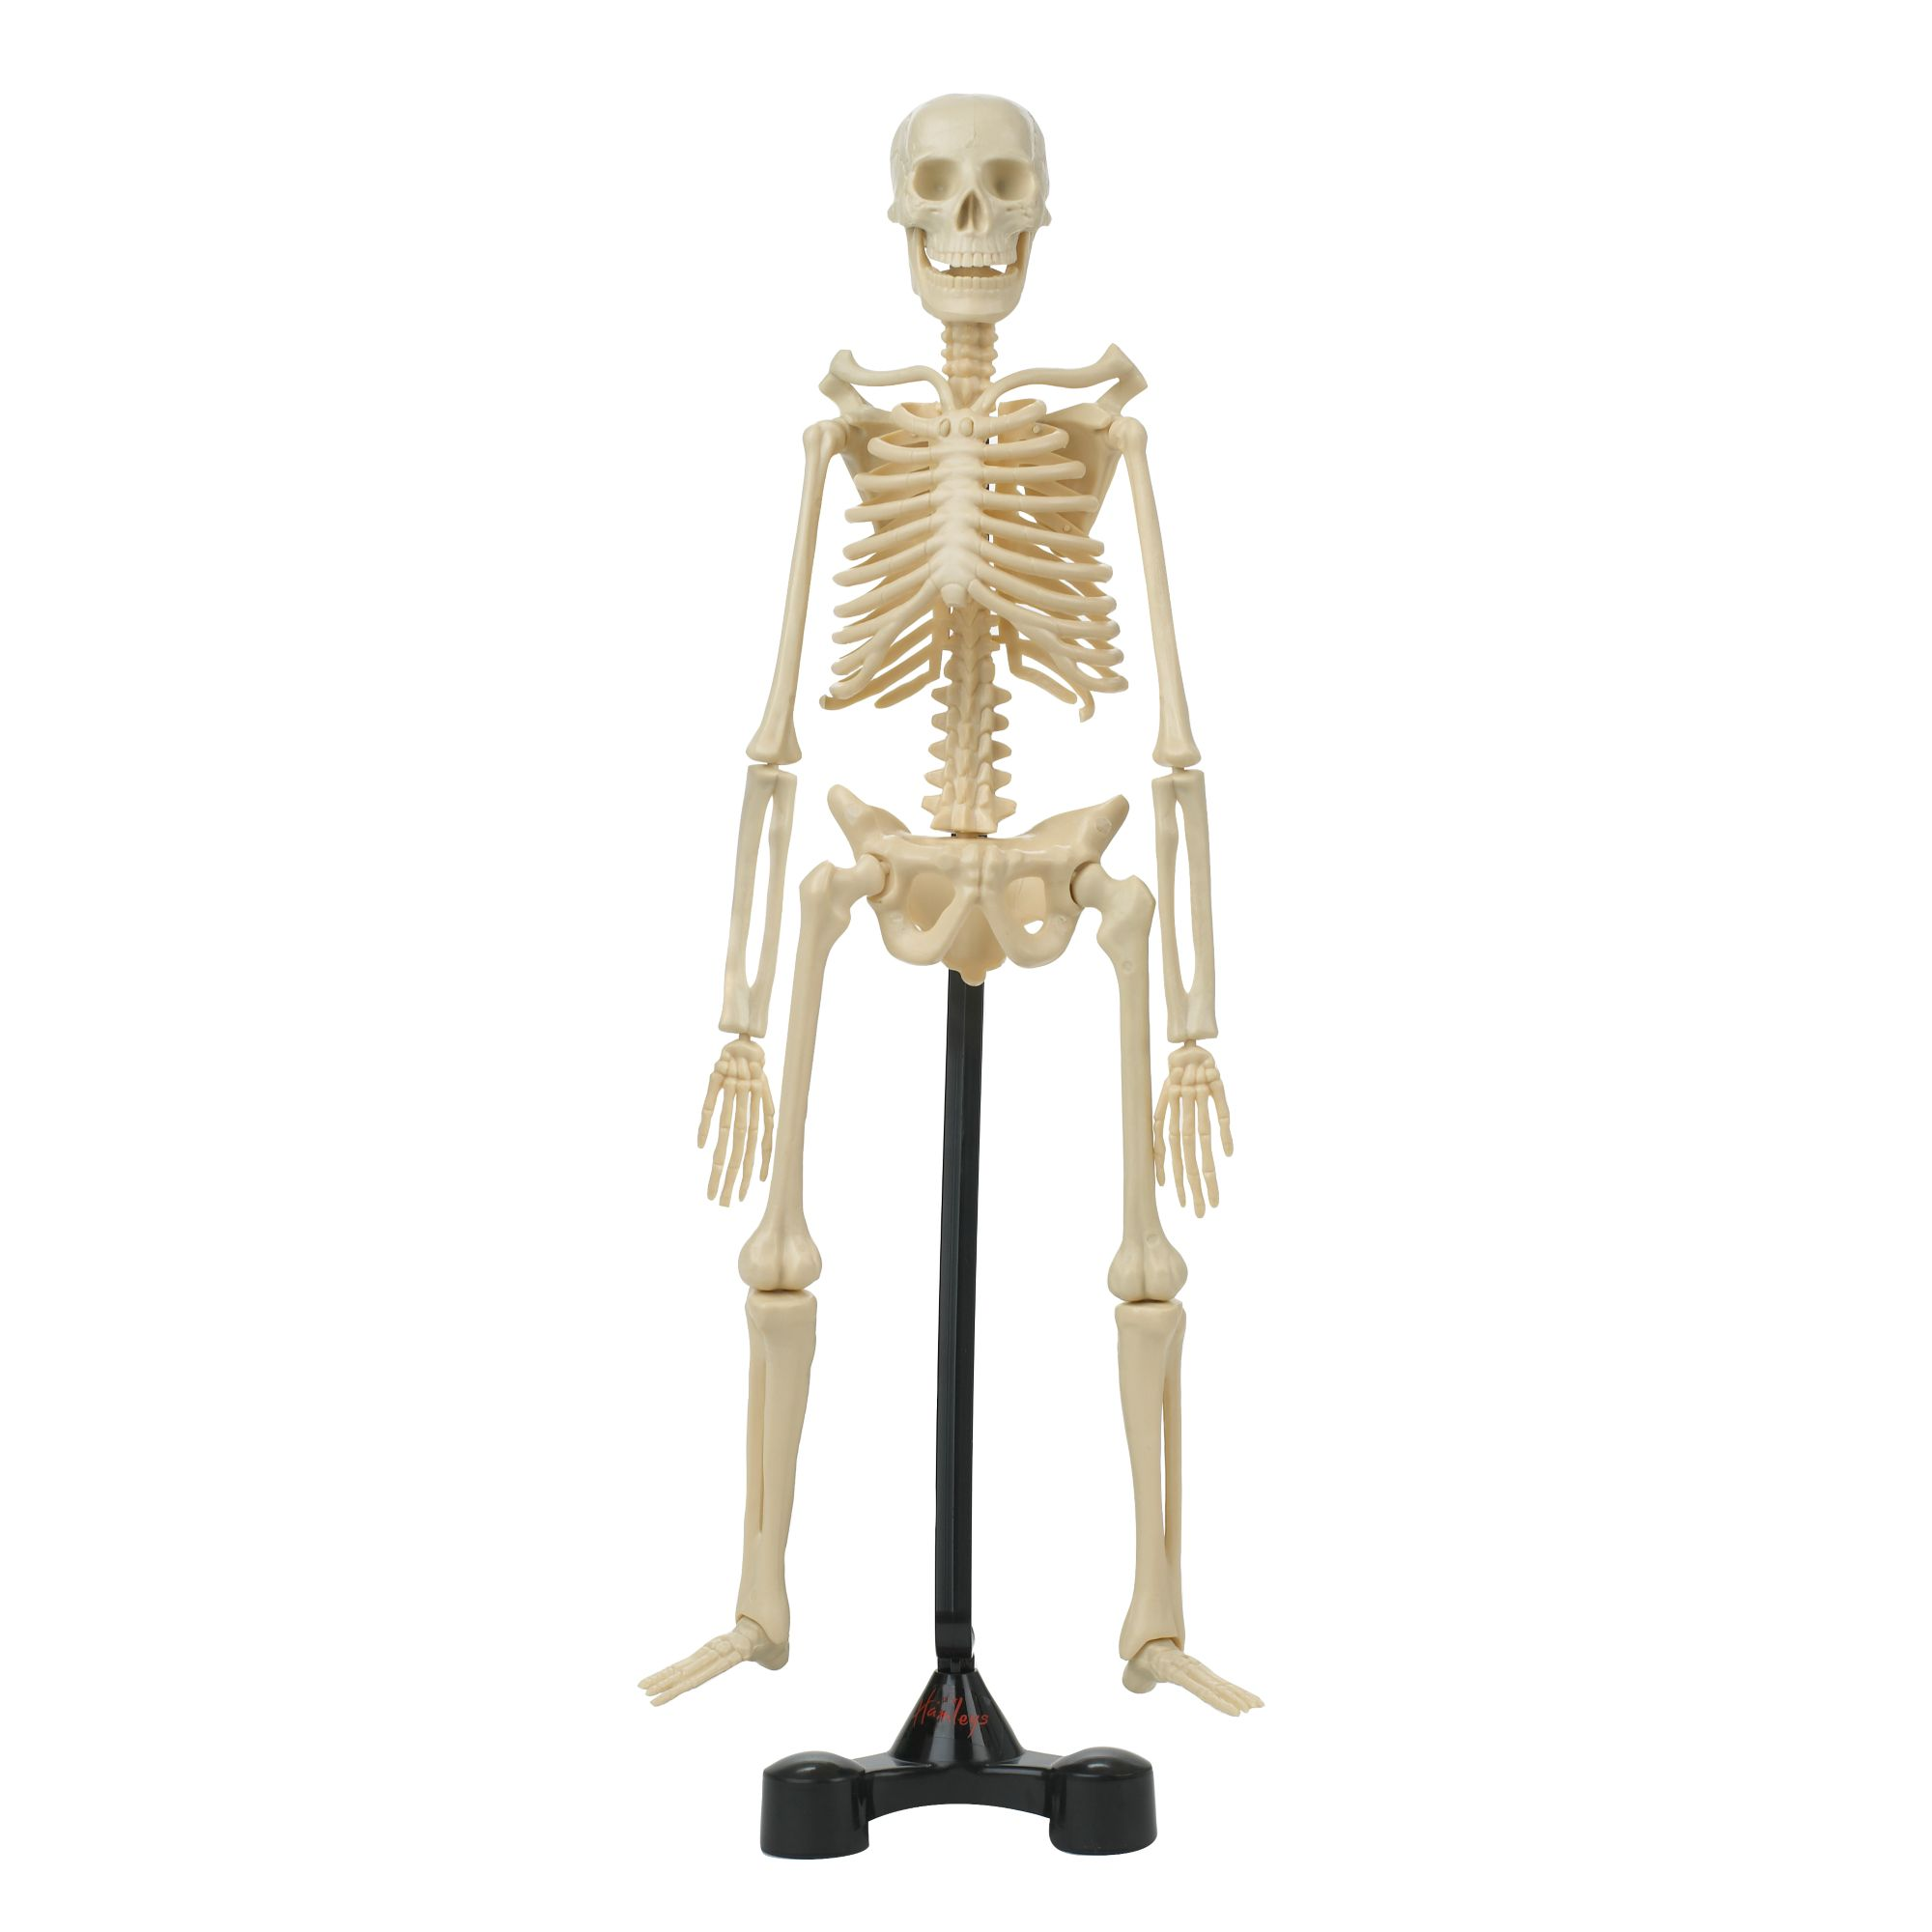 Bones skeleton model kit